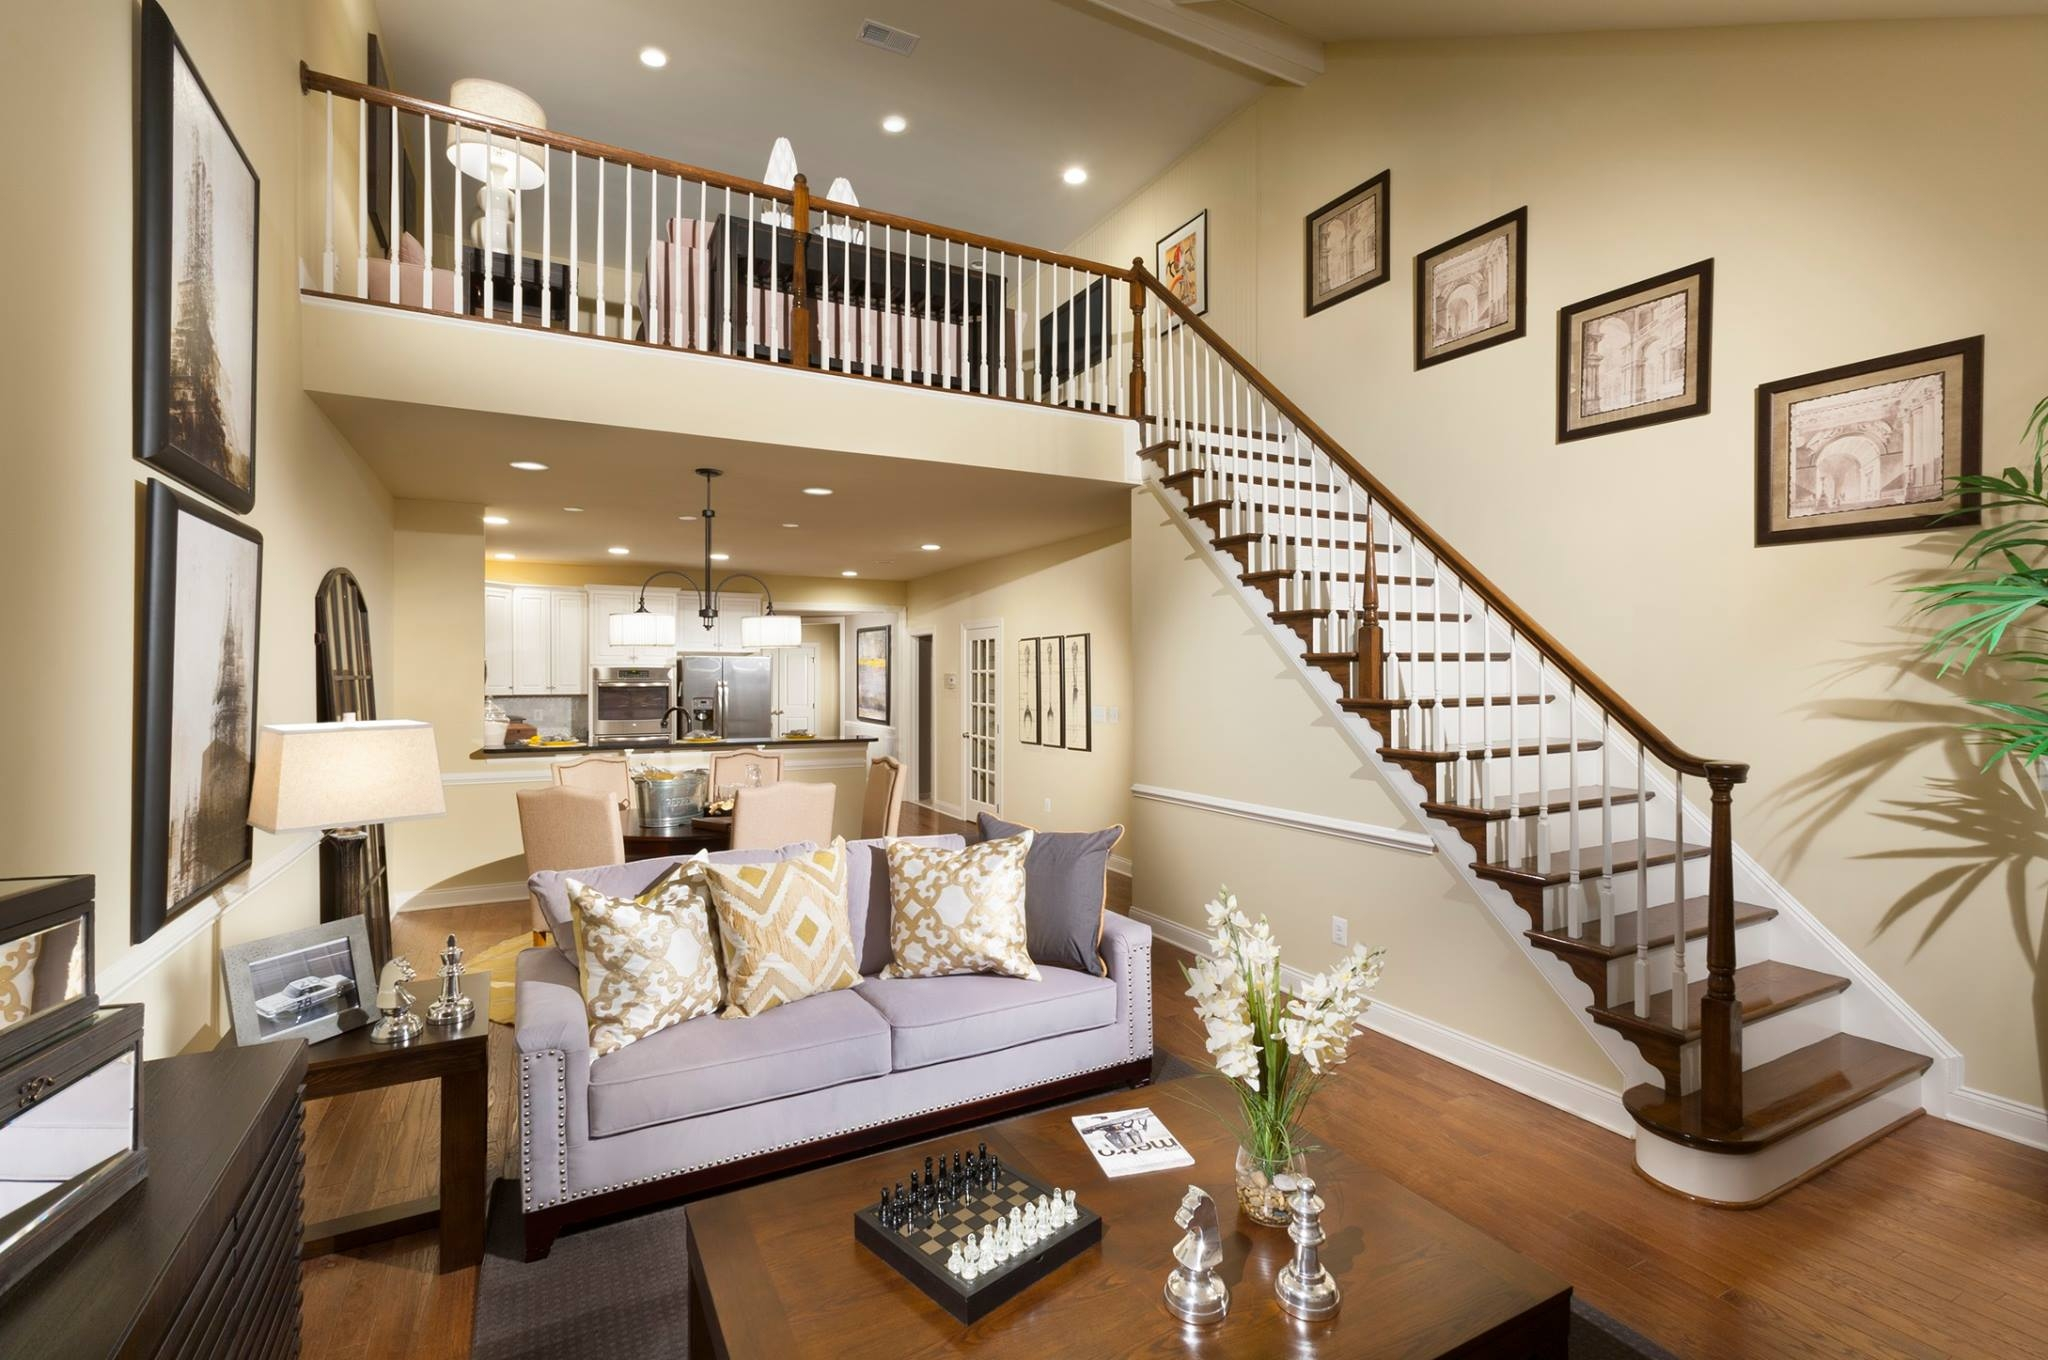 Home Loudoun Stairs | Staircase Builders Near Me | Deck | Baluster | Wrought Iron | Diy Staircase | Wood